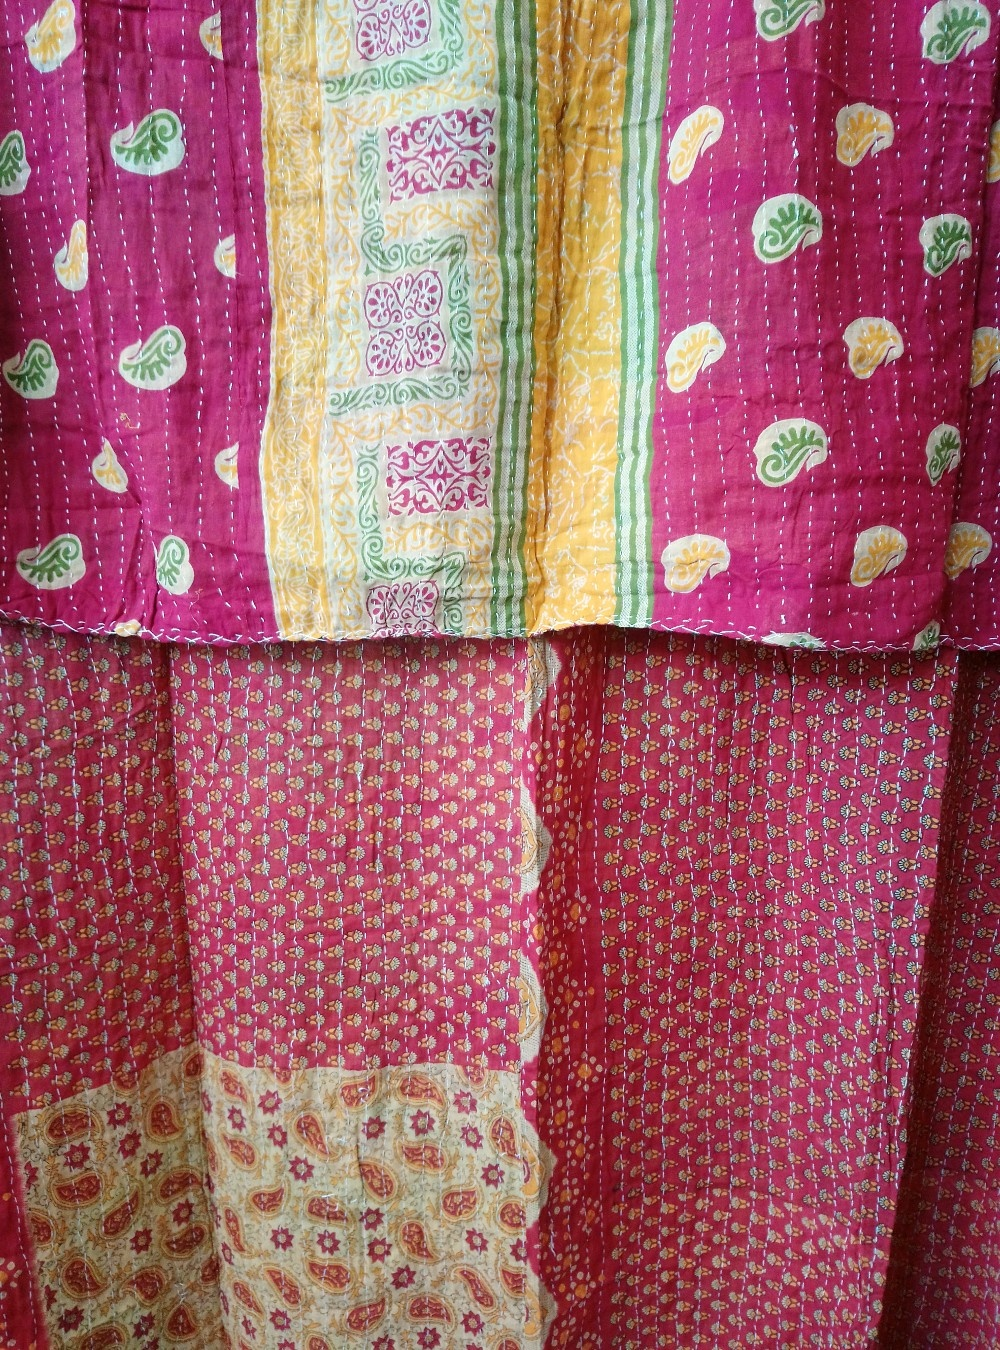 Kantha Sari Throw Blanket #612